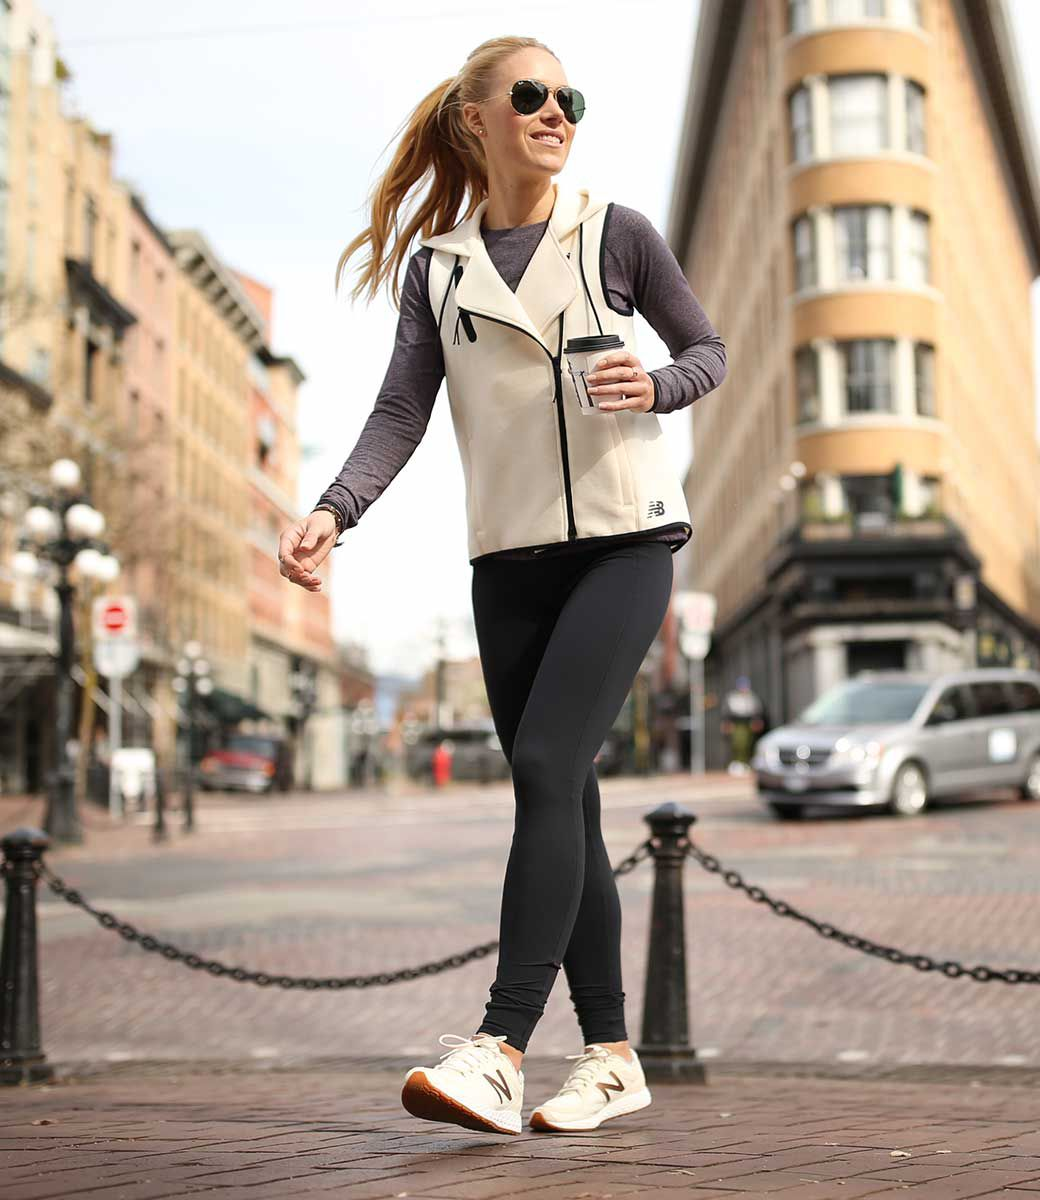 New Balance Womens Media September Lifestyle Look,